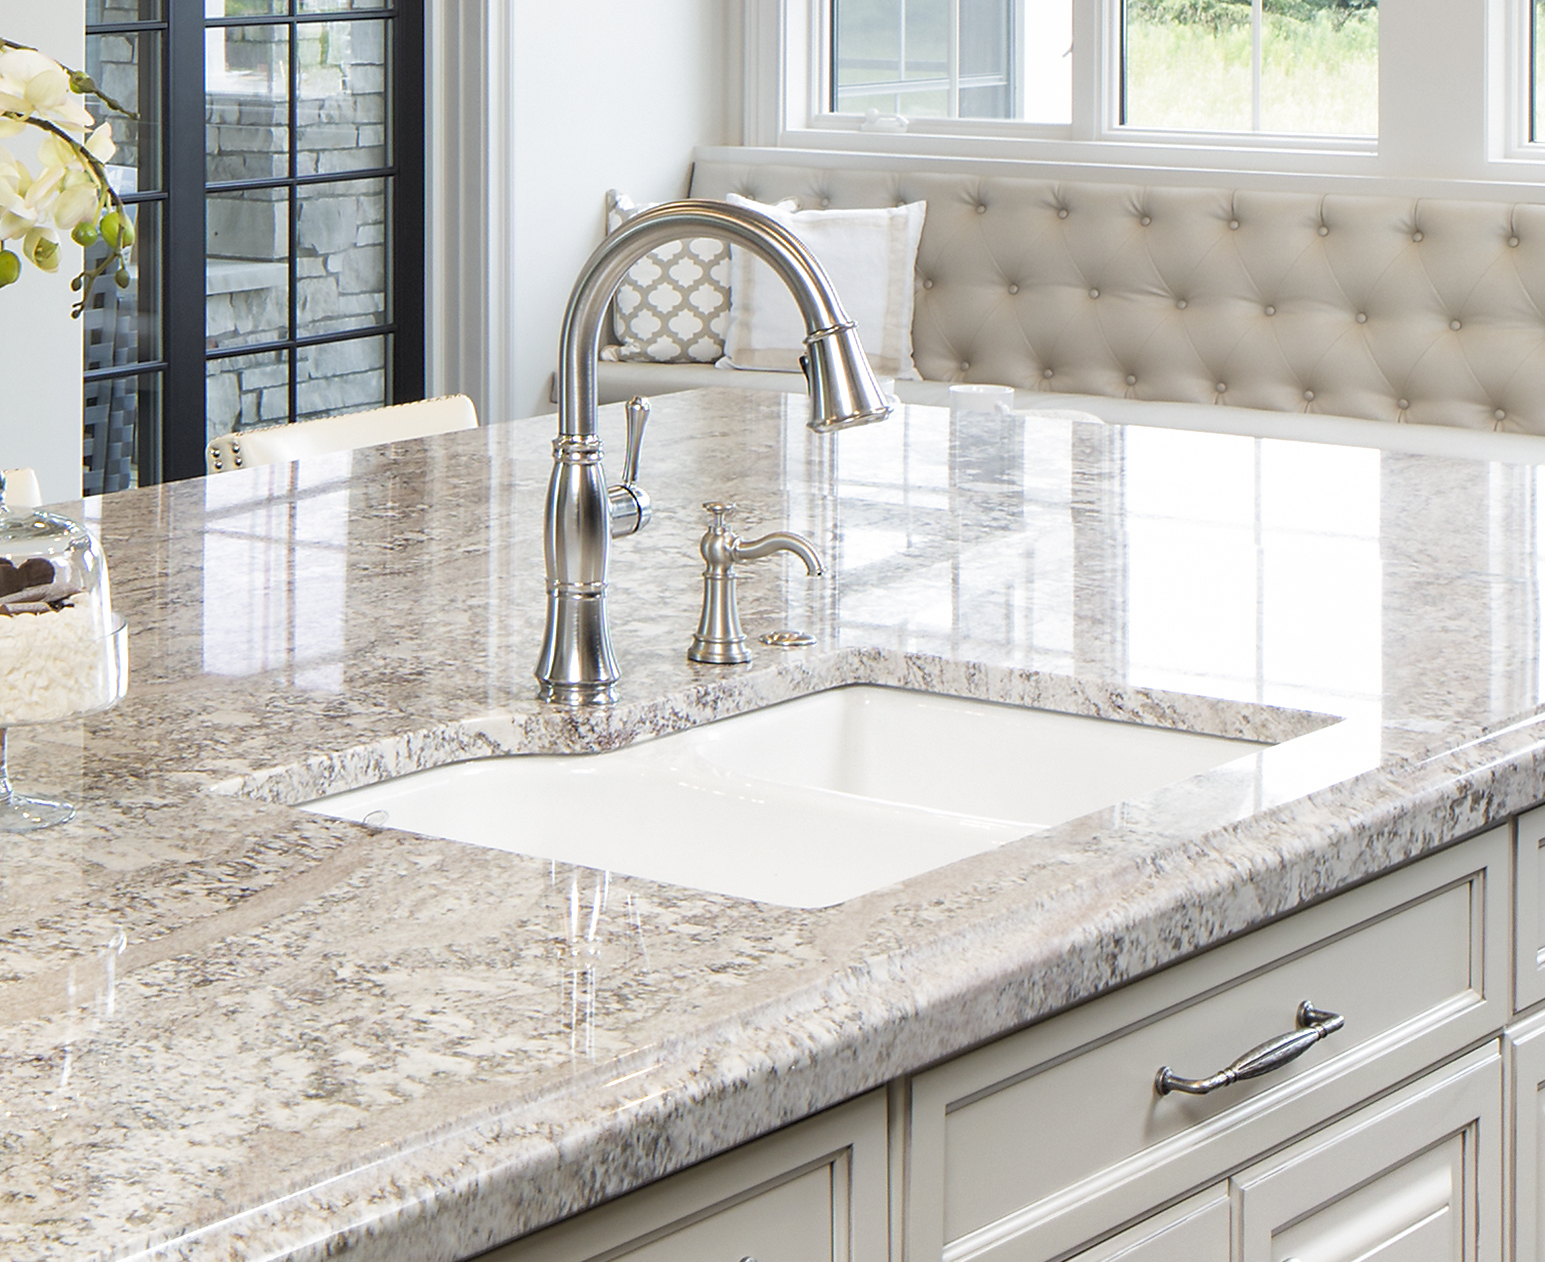 sink-options-for-granite-countertops-bathroom-kitchen-sinks-designs-countertop-gallery-pics-edges-images-photo-photos-pictures